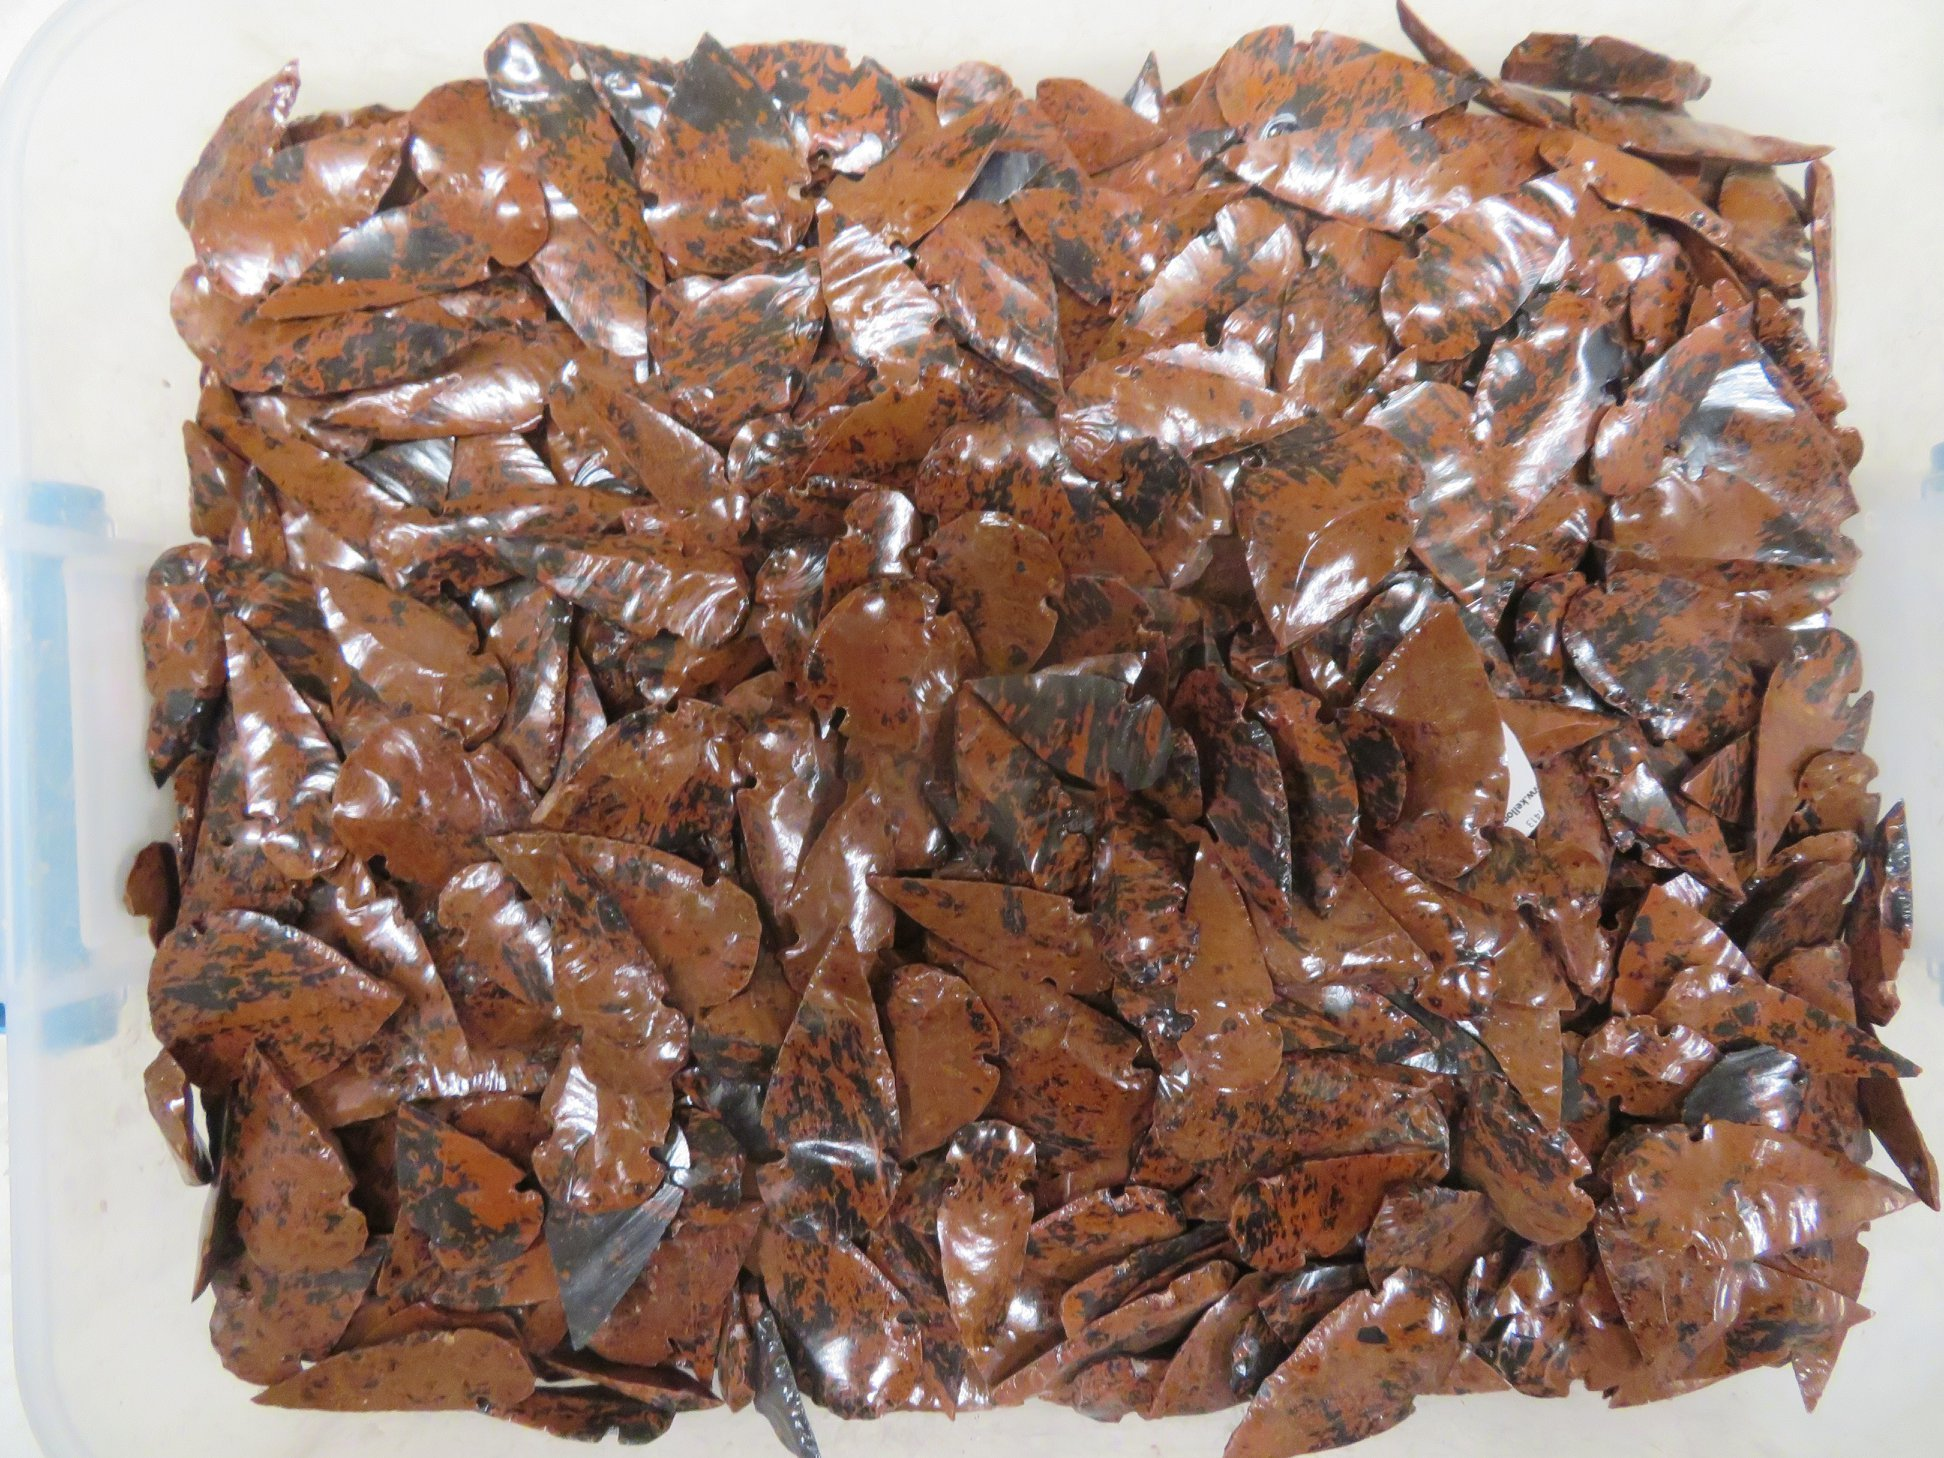 Mahogany Obsidian Arrowheads-Sold in packs of 100